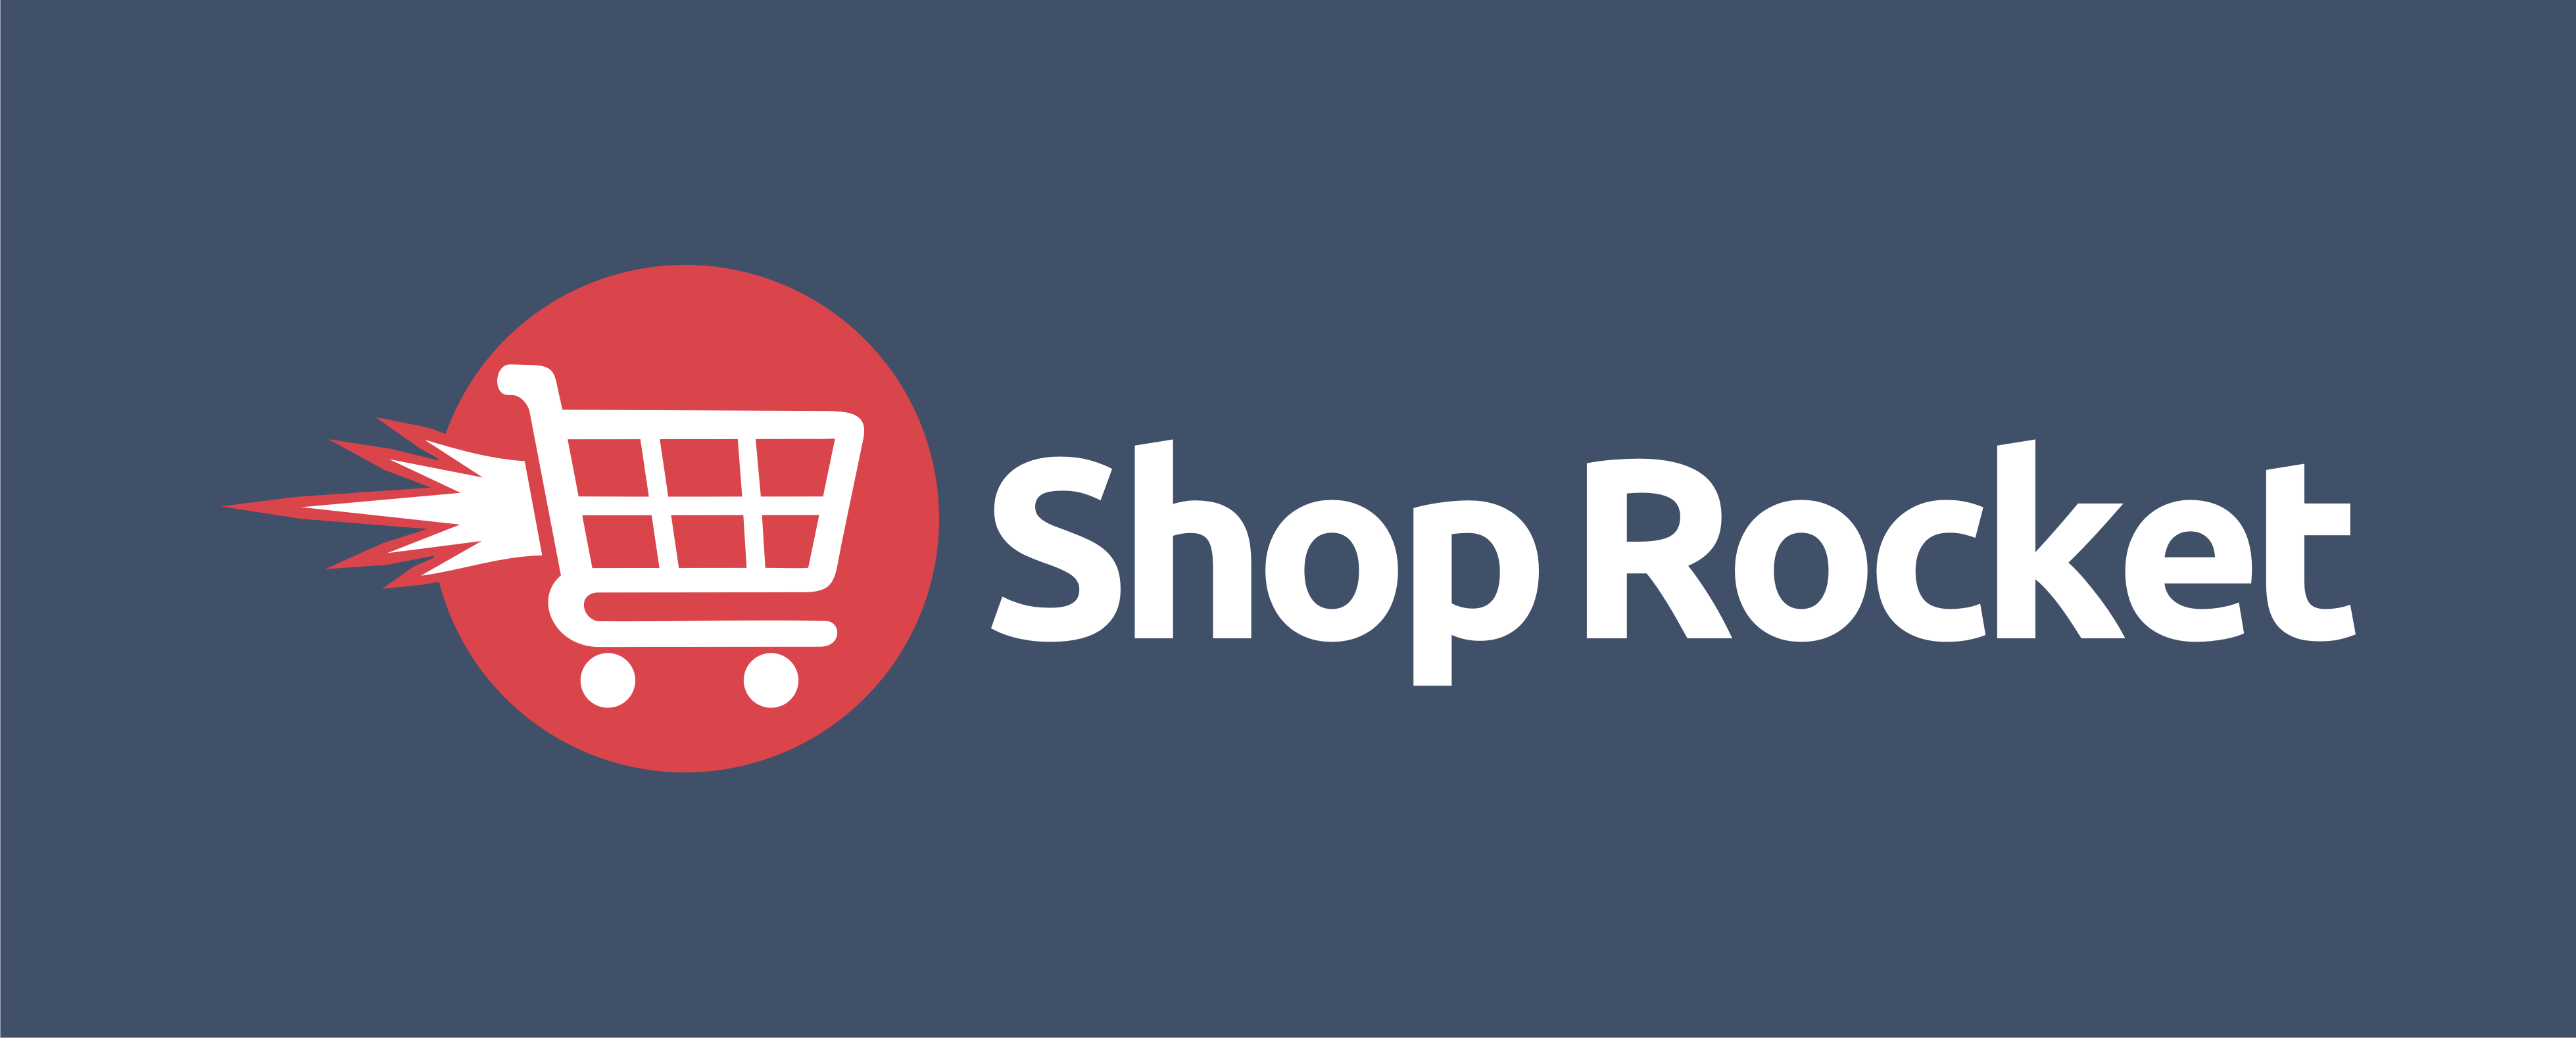 Create a memorable logo for Shop Rocket